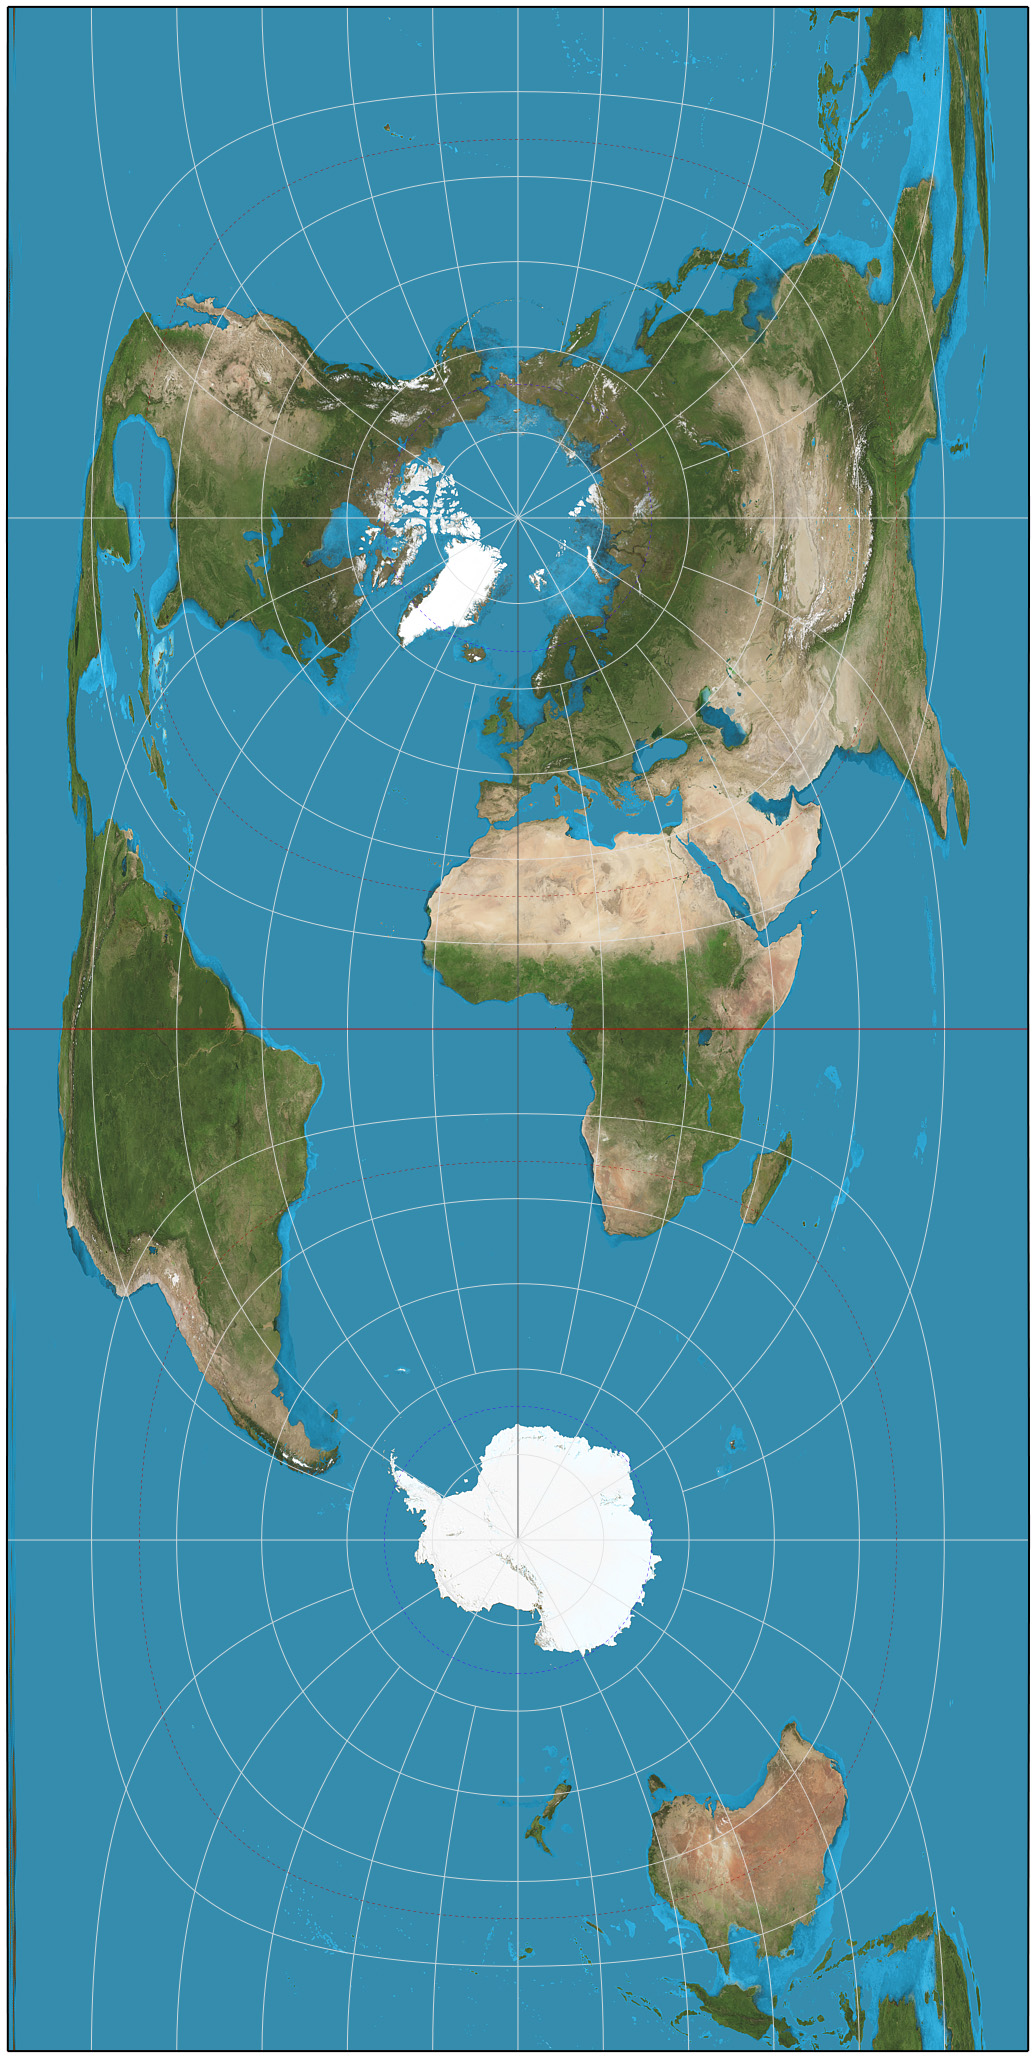 List of map projections - Wikipedia Peters Projection World Map Globe on peters projection map vs mercator, accurate scale map of globe, flat map and globe, peters projection map with scale, peters map of the world, peters projection of the world,